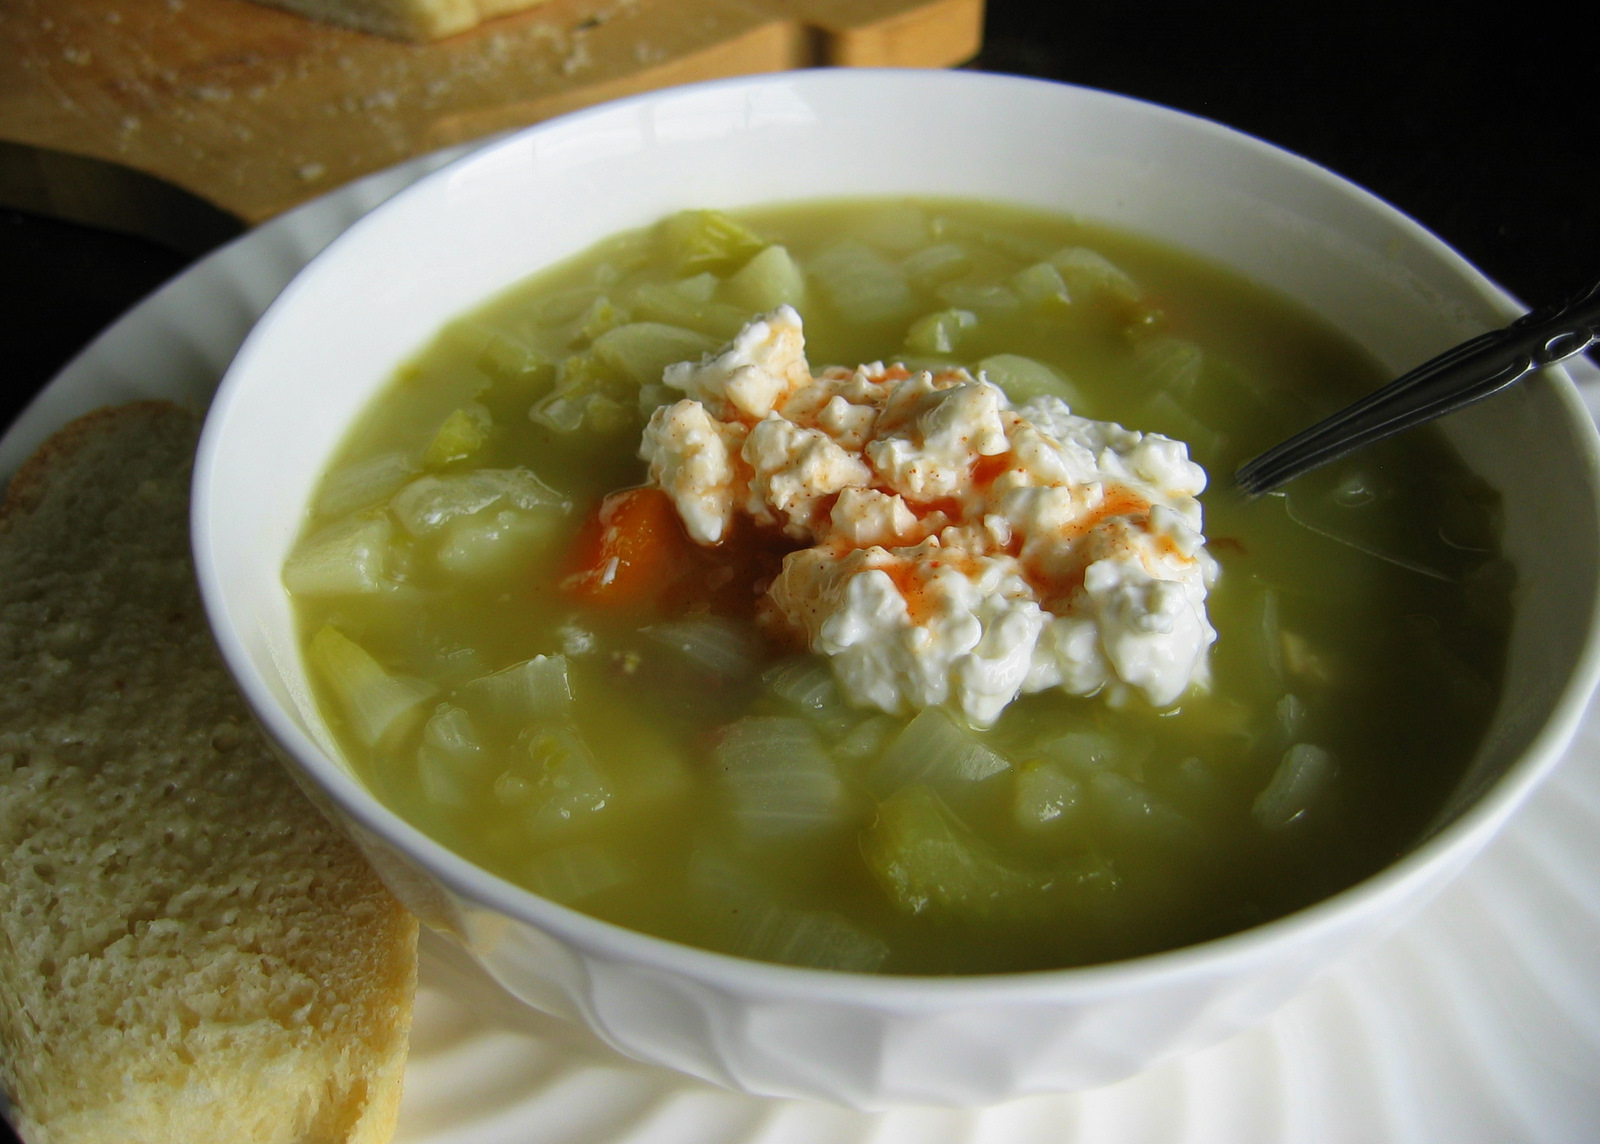 ... Cookies with Sprinkles: Green Split Pea Soup...Frugal Deliciousness